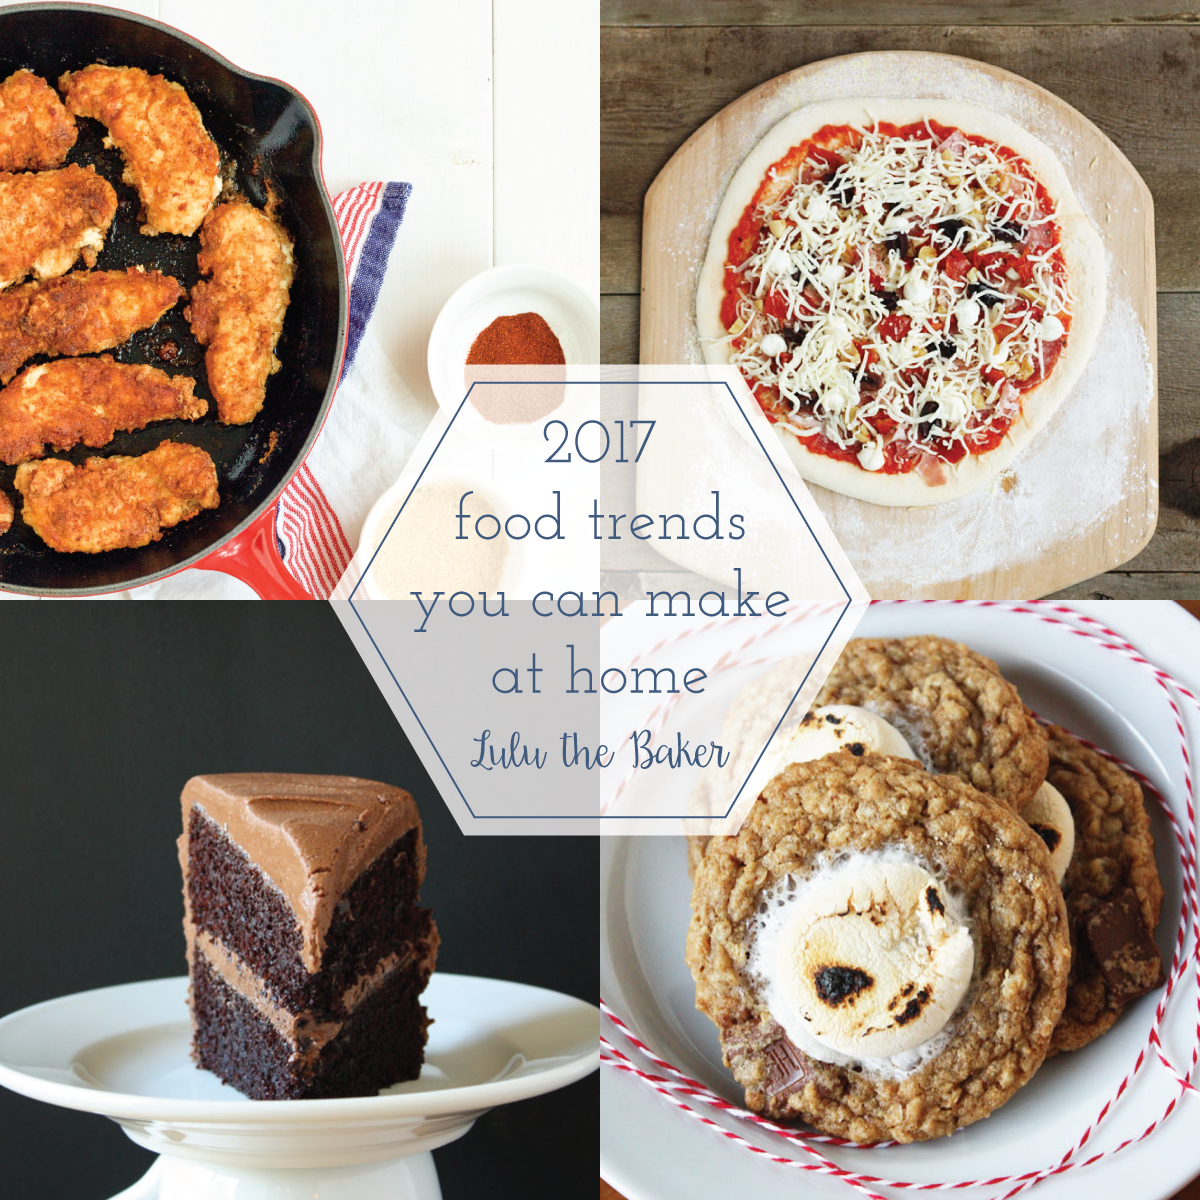 Jump on some of the hottest food trends of 2017 with these easy recipes!